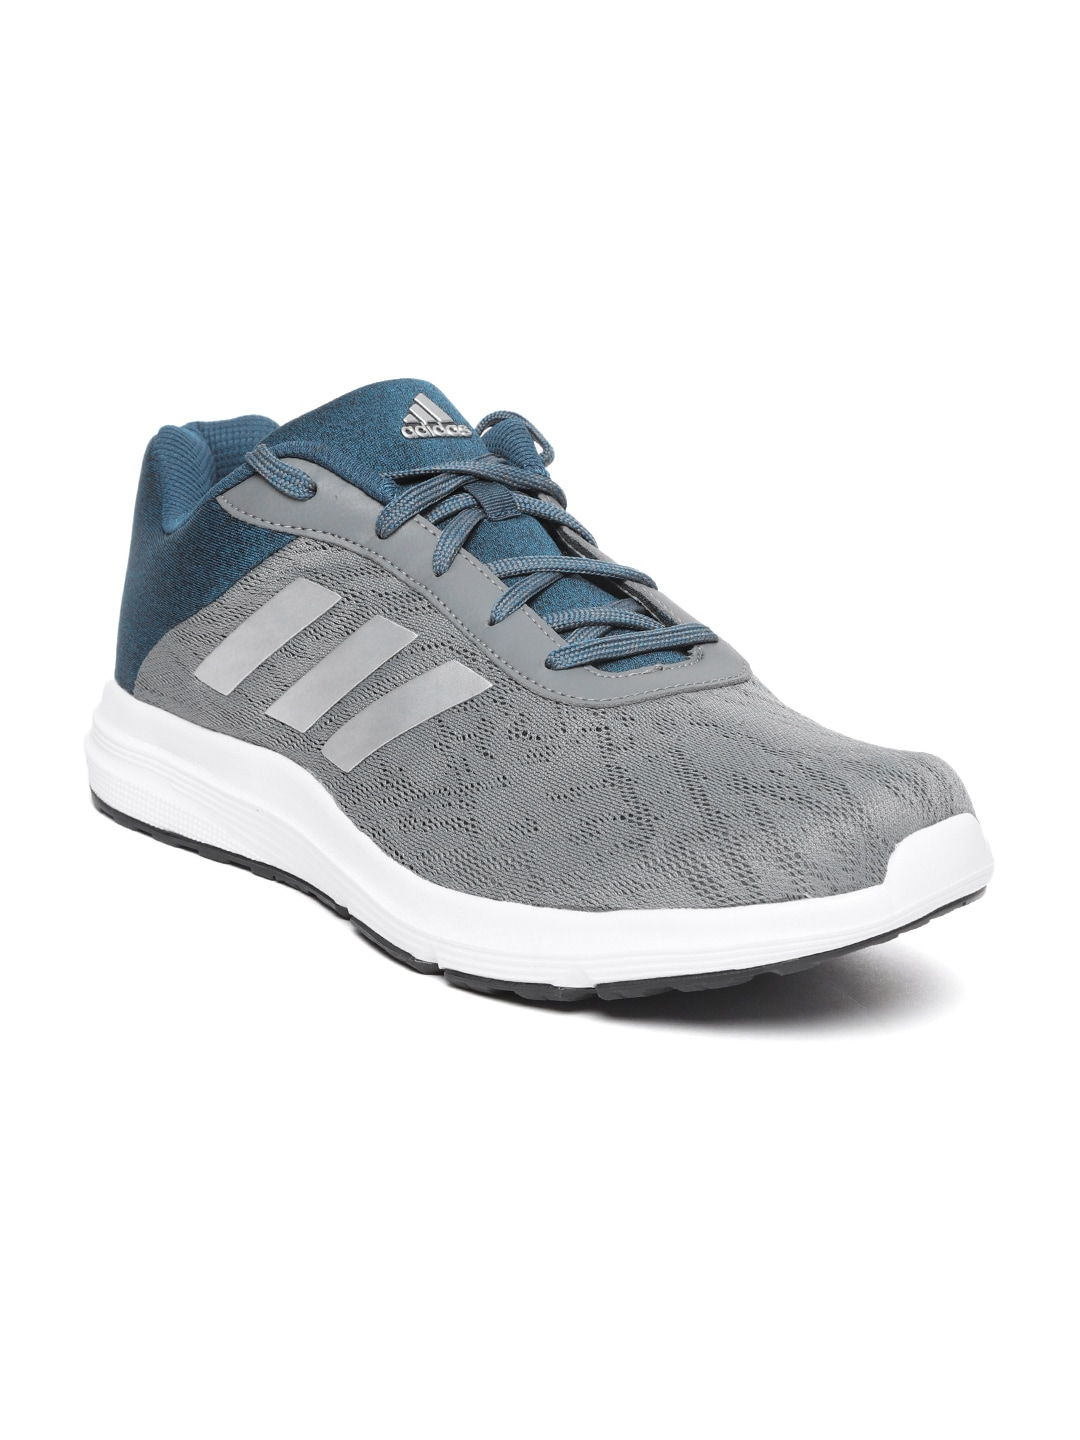 534a5247615e Buy ADIDAS Men Teal Blue TORIL 1.0 Running Shoes - Sports Shoes for ...